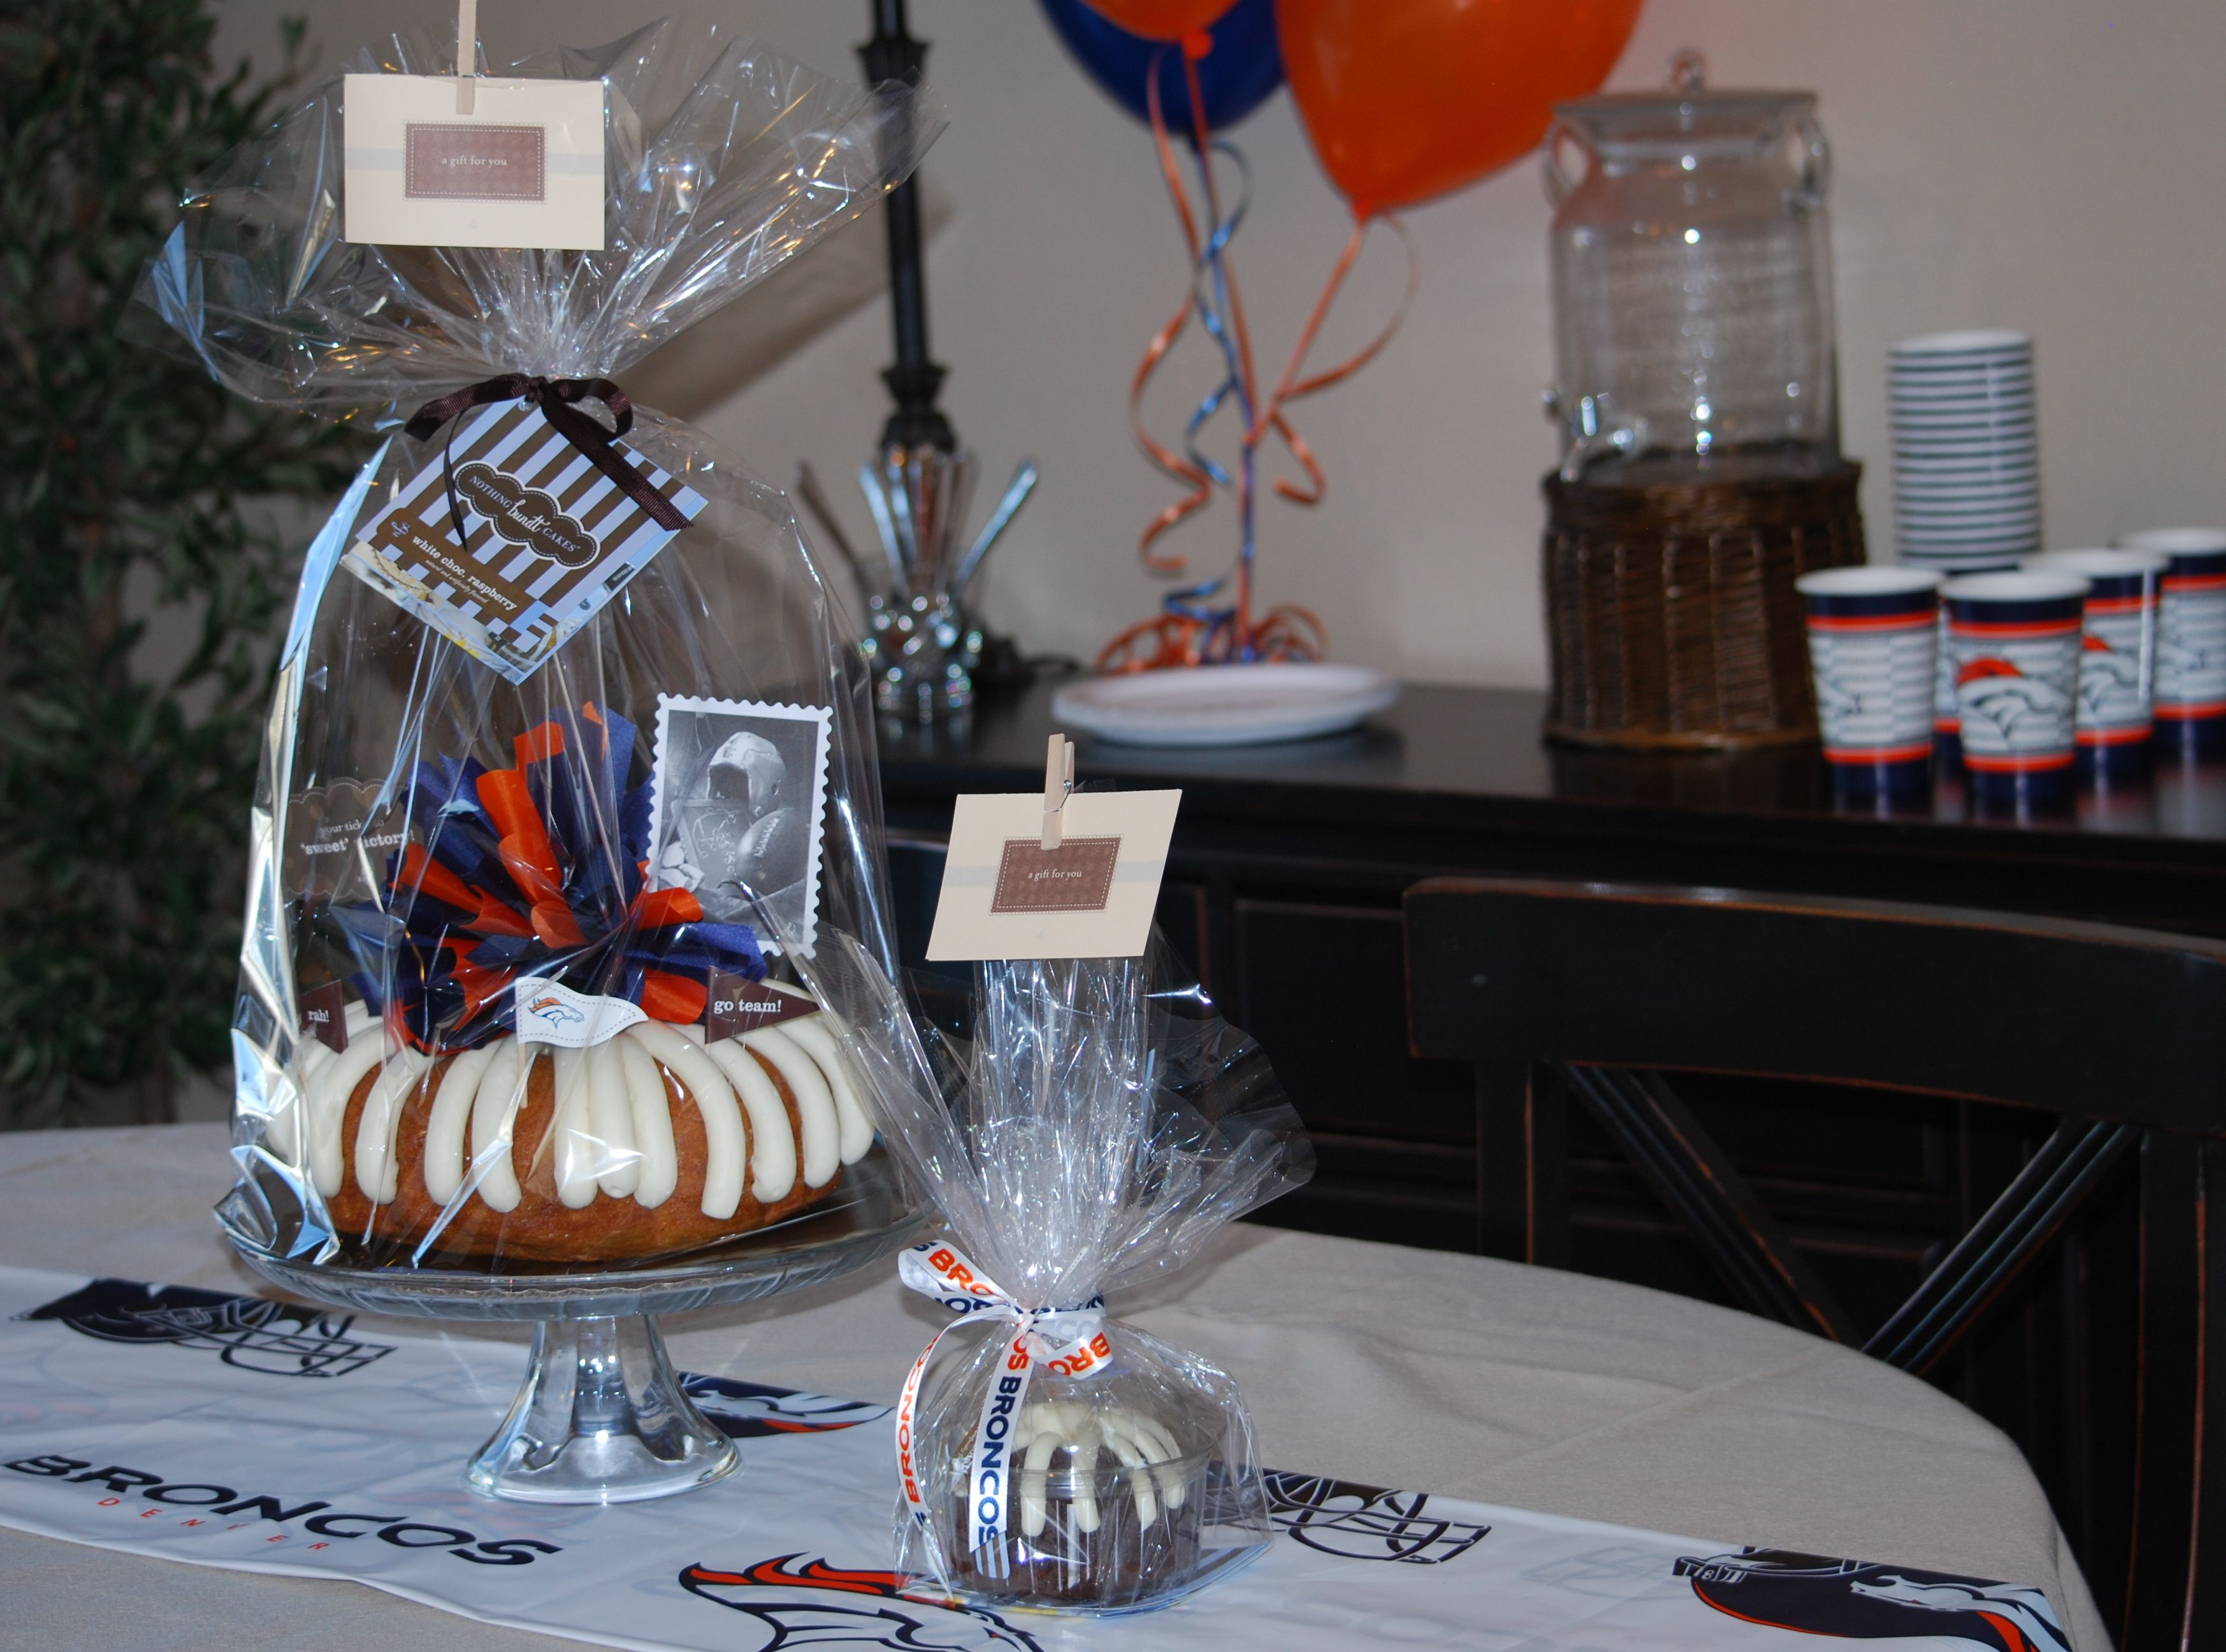 Get in the spirit with a broncos cake 3032487224